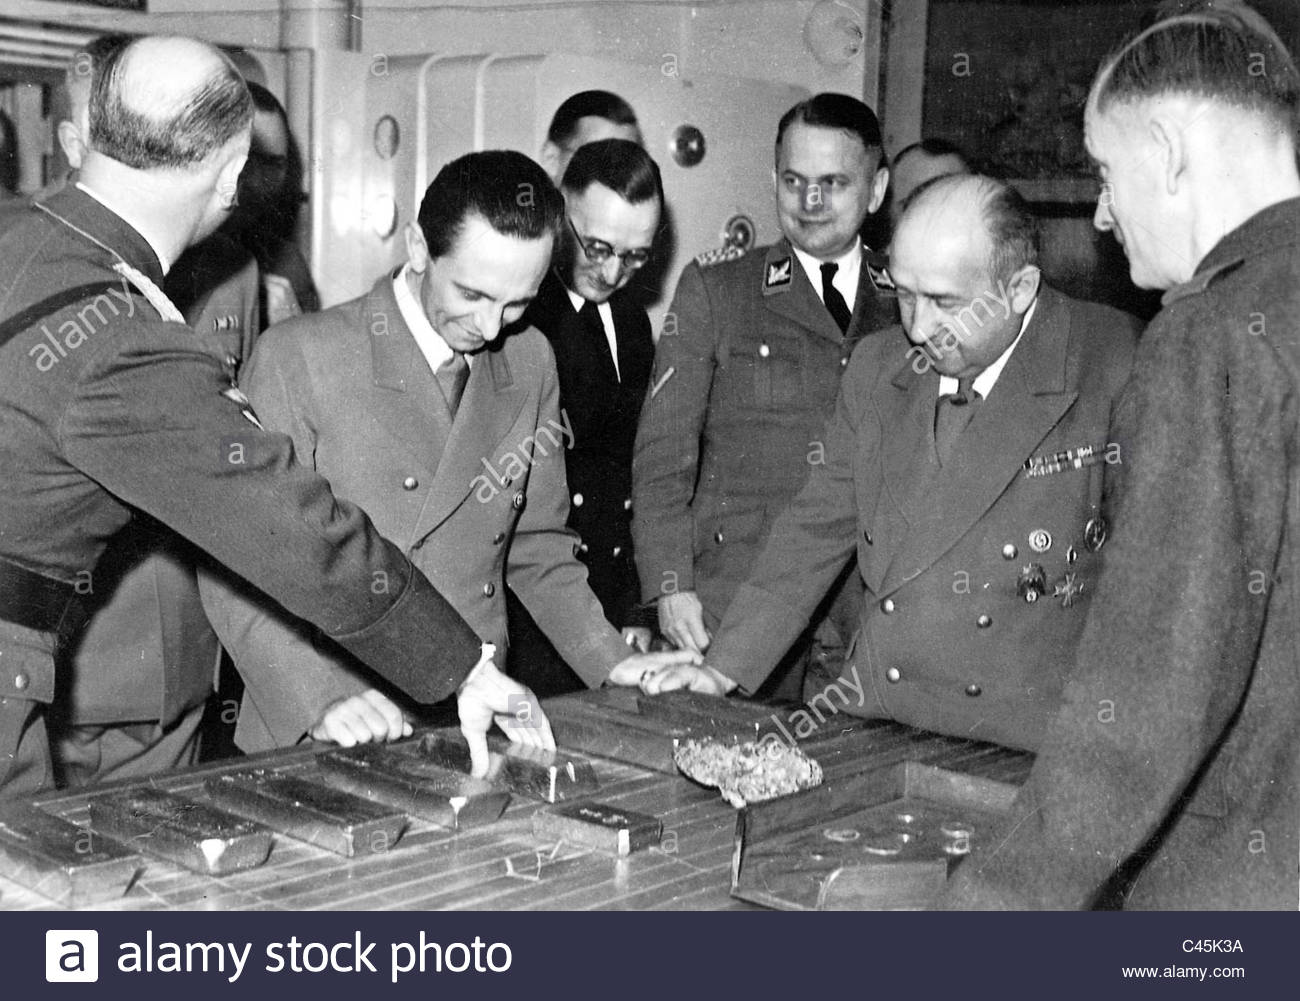 joseph-goebbels-funk-and-ohlendorf-with-gold-bars-made-from-the-gold-C45K3A